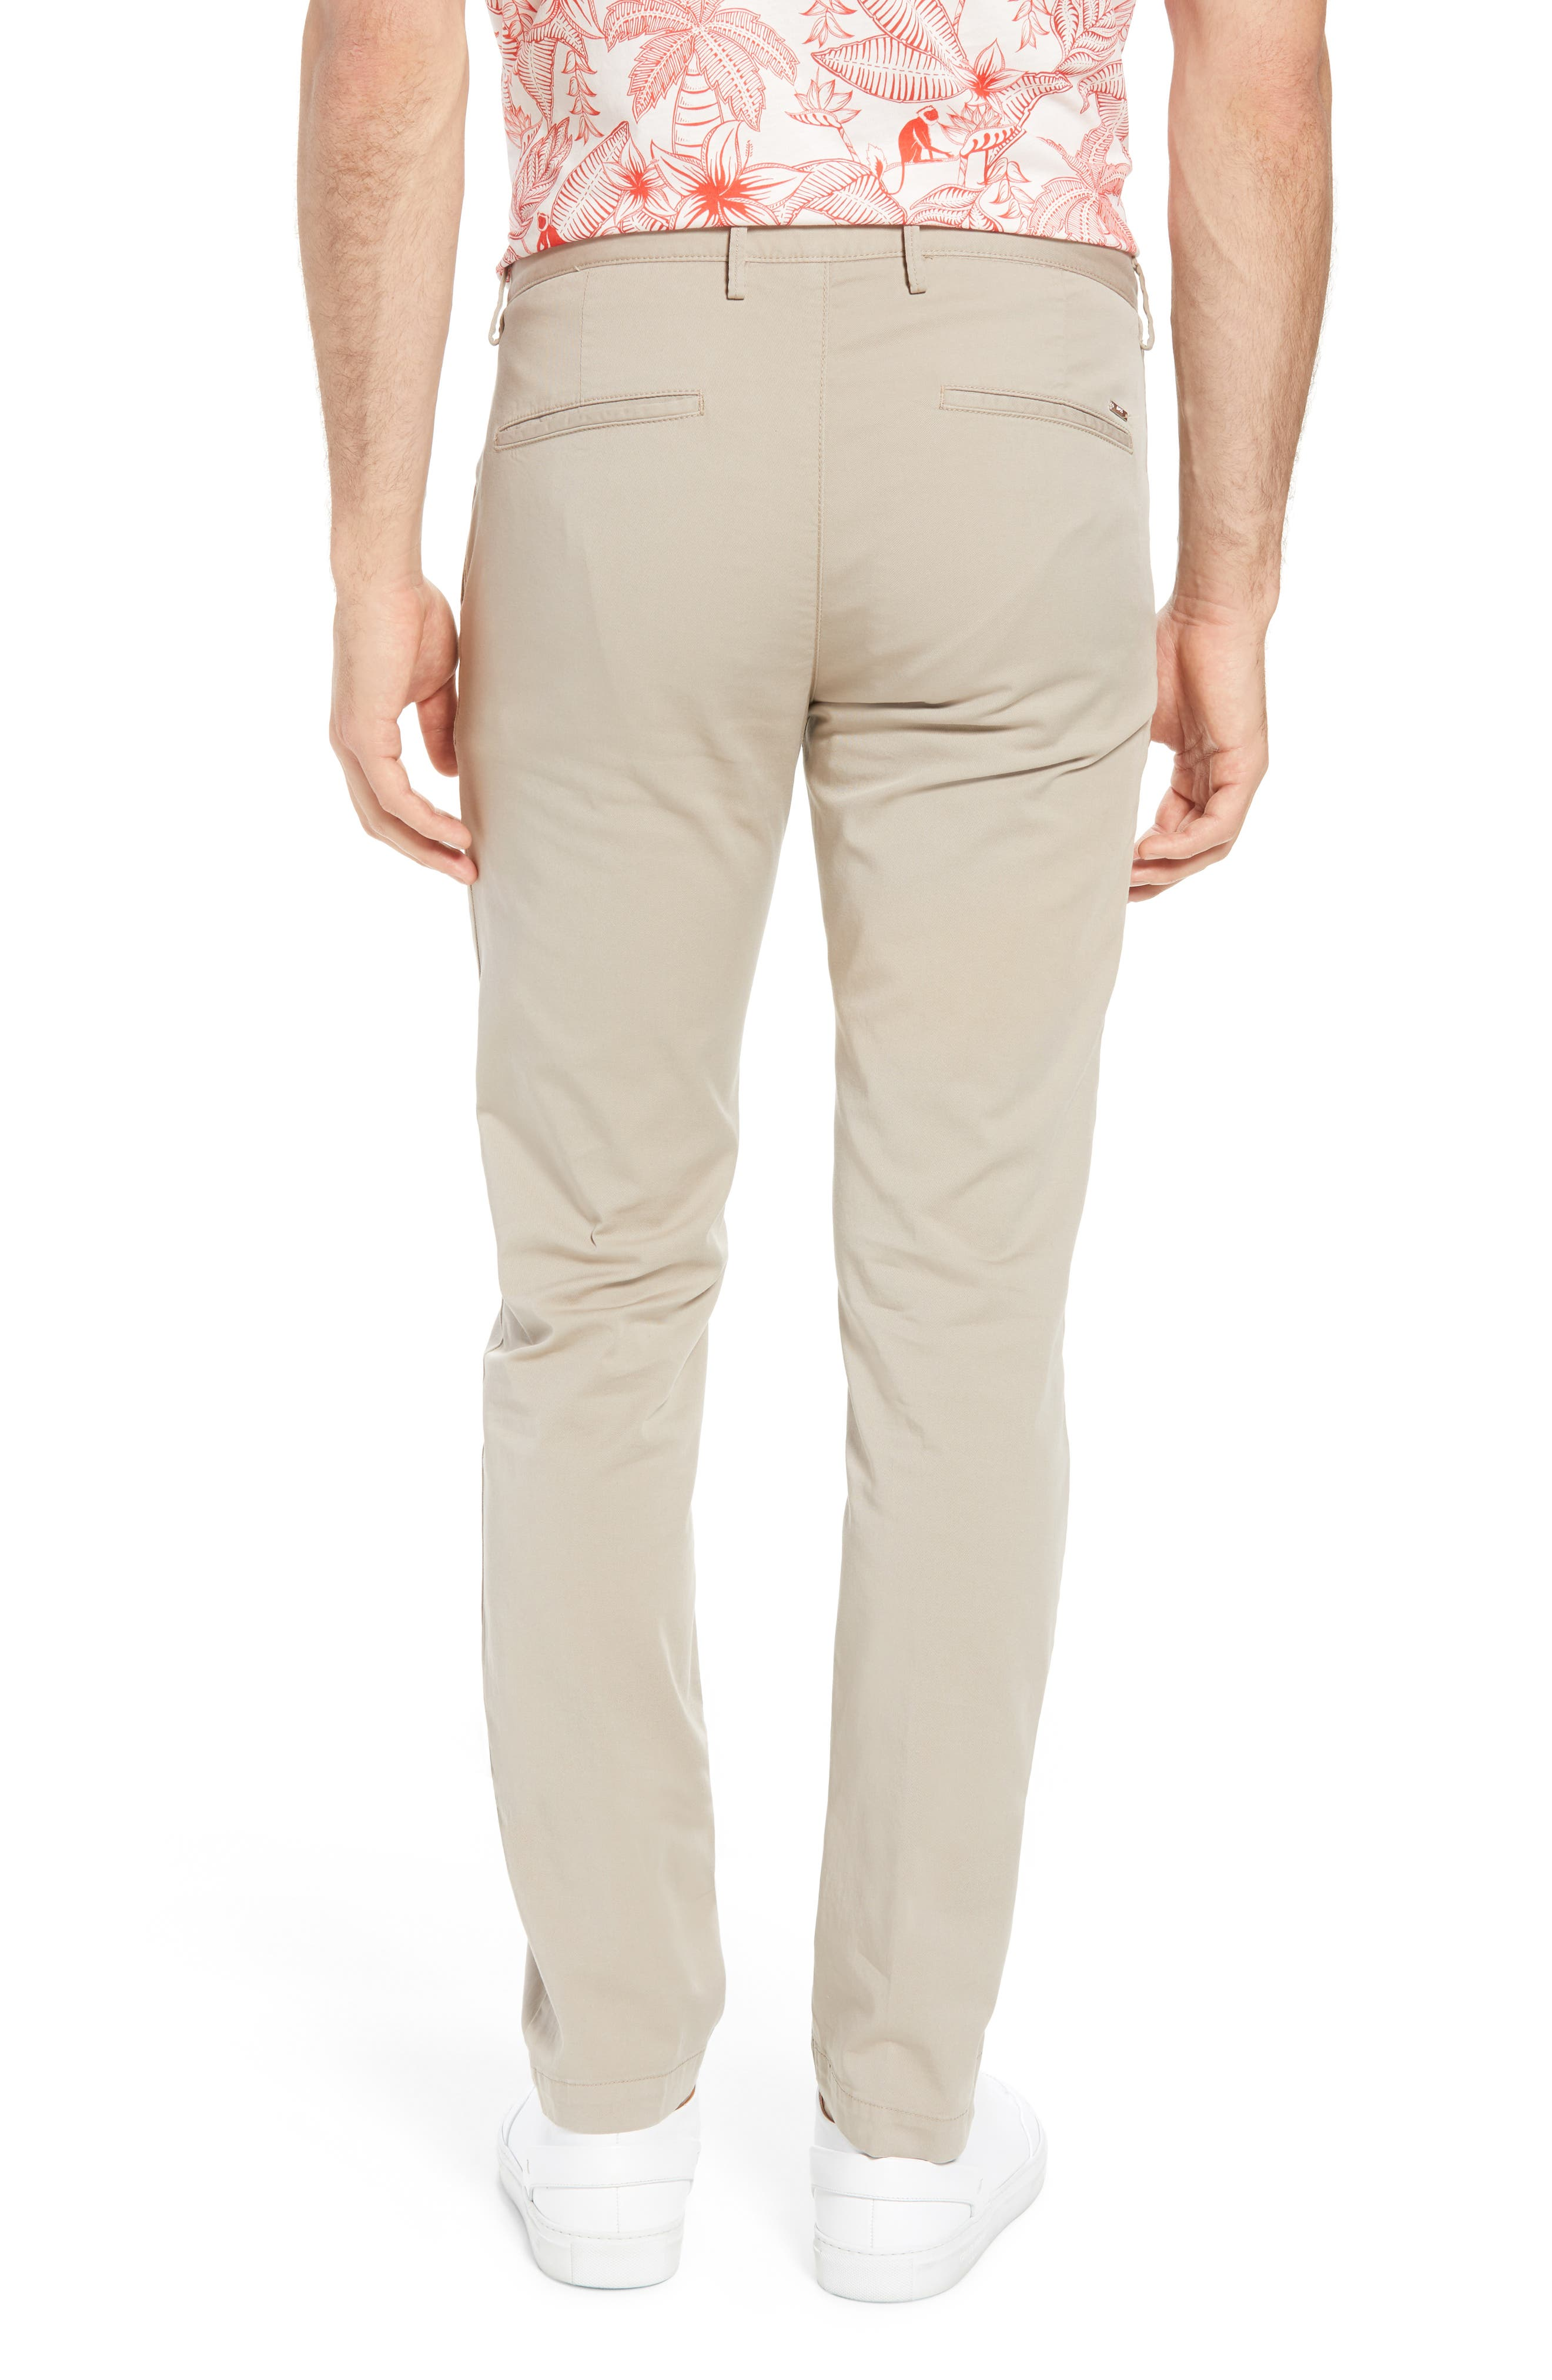 Rice Slim Fit Chino Pants,                             Alternate thumbnail 3, color,